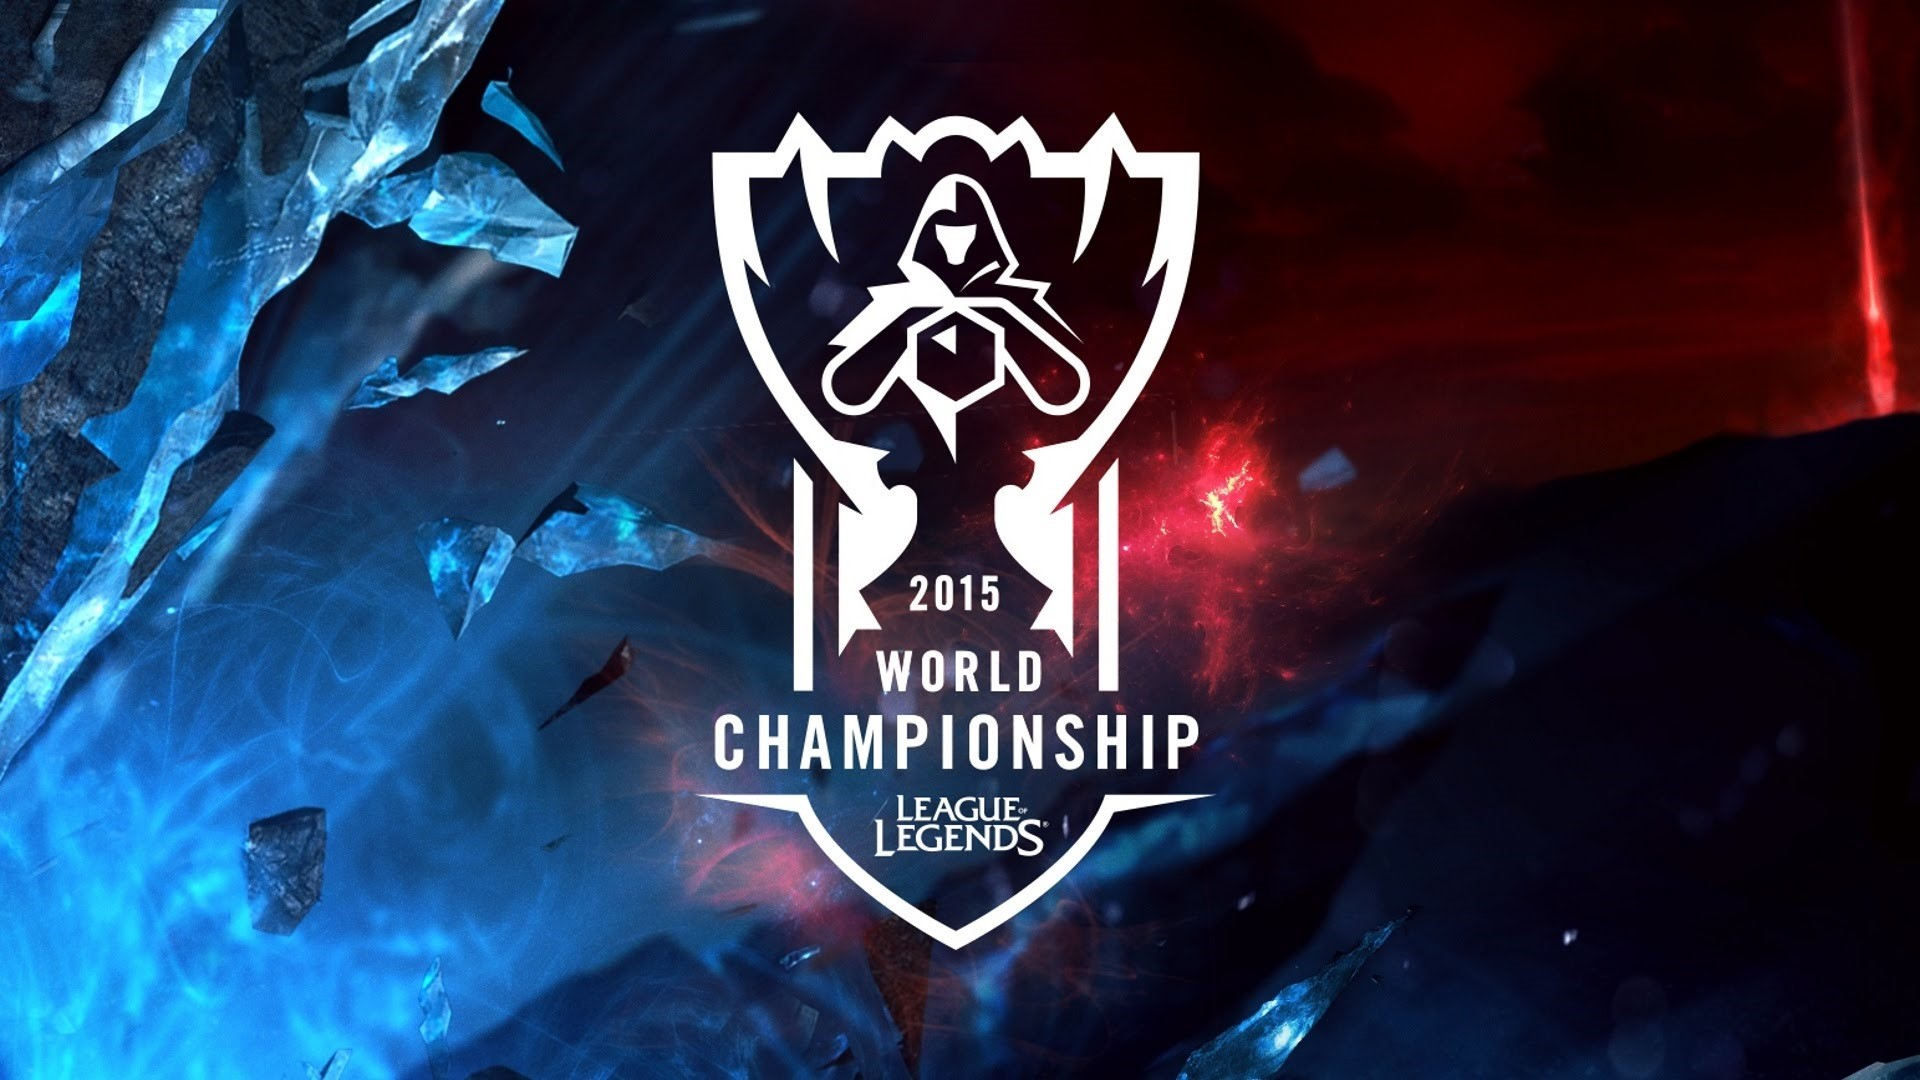 Things You Definitely Need to Know About The League of Legends World Champion